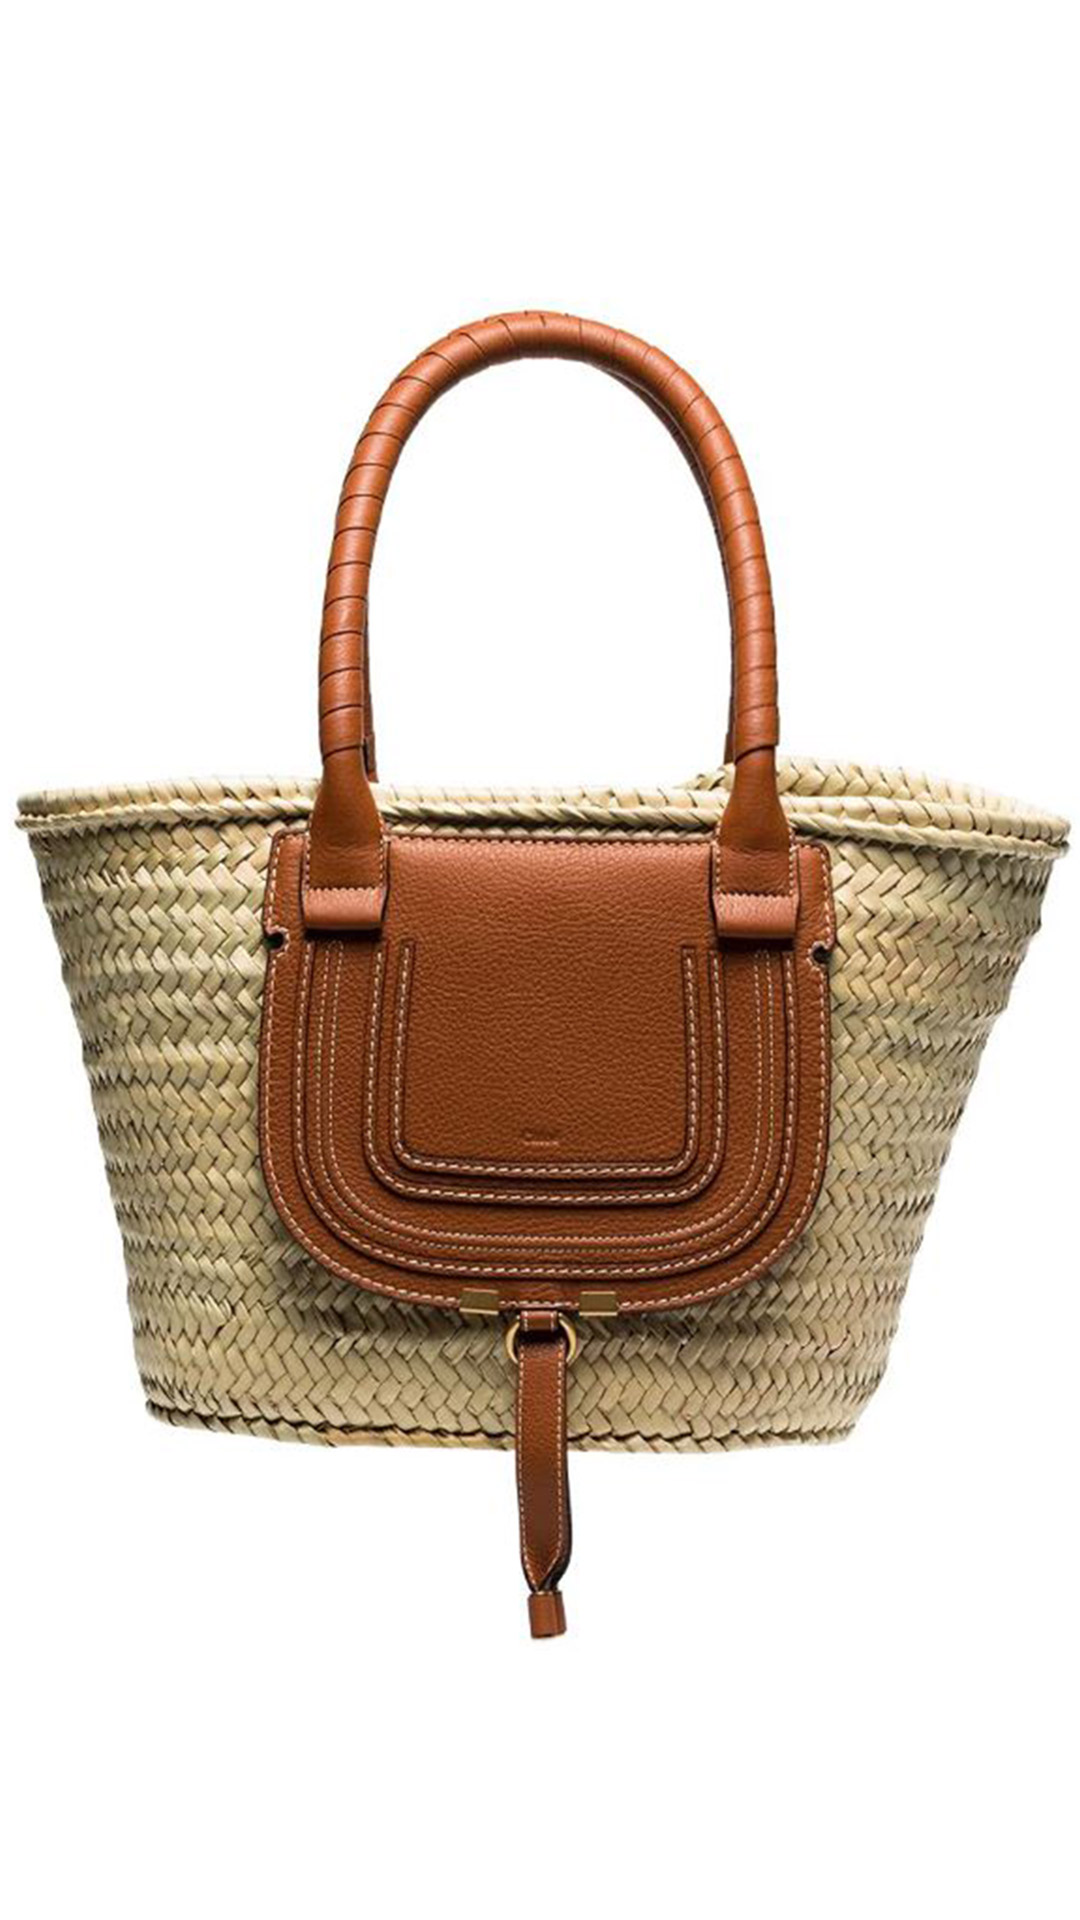 CHLOÉ Marcie Basket Bag